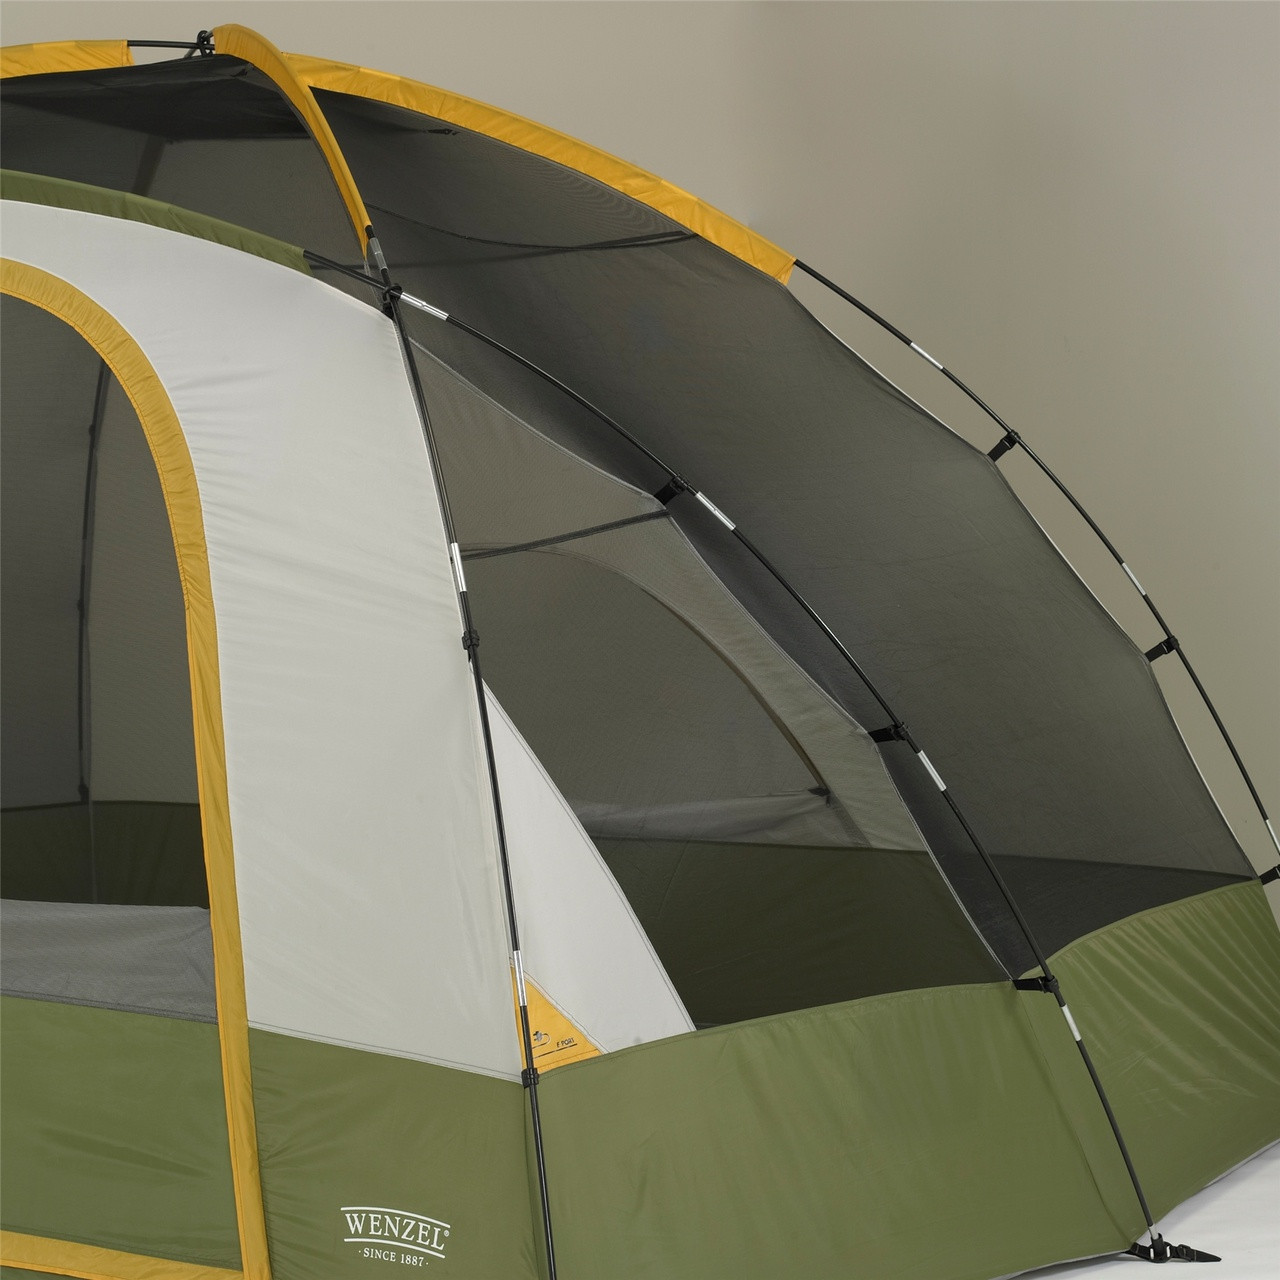 Close up view of the right side poles and tent body on a Wenzel Evergreen 6 tent with the rain fly off